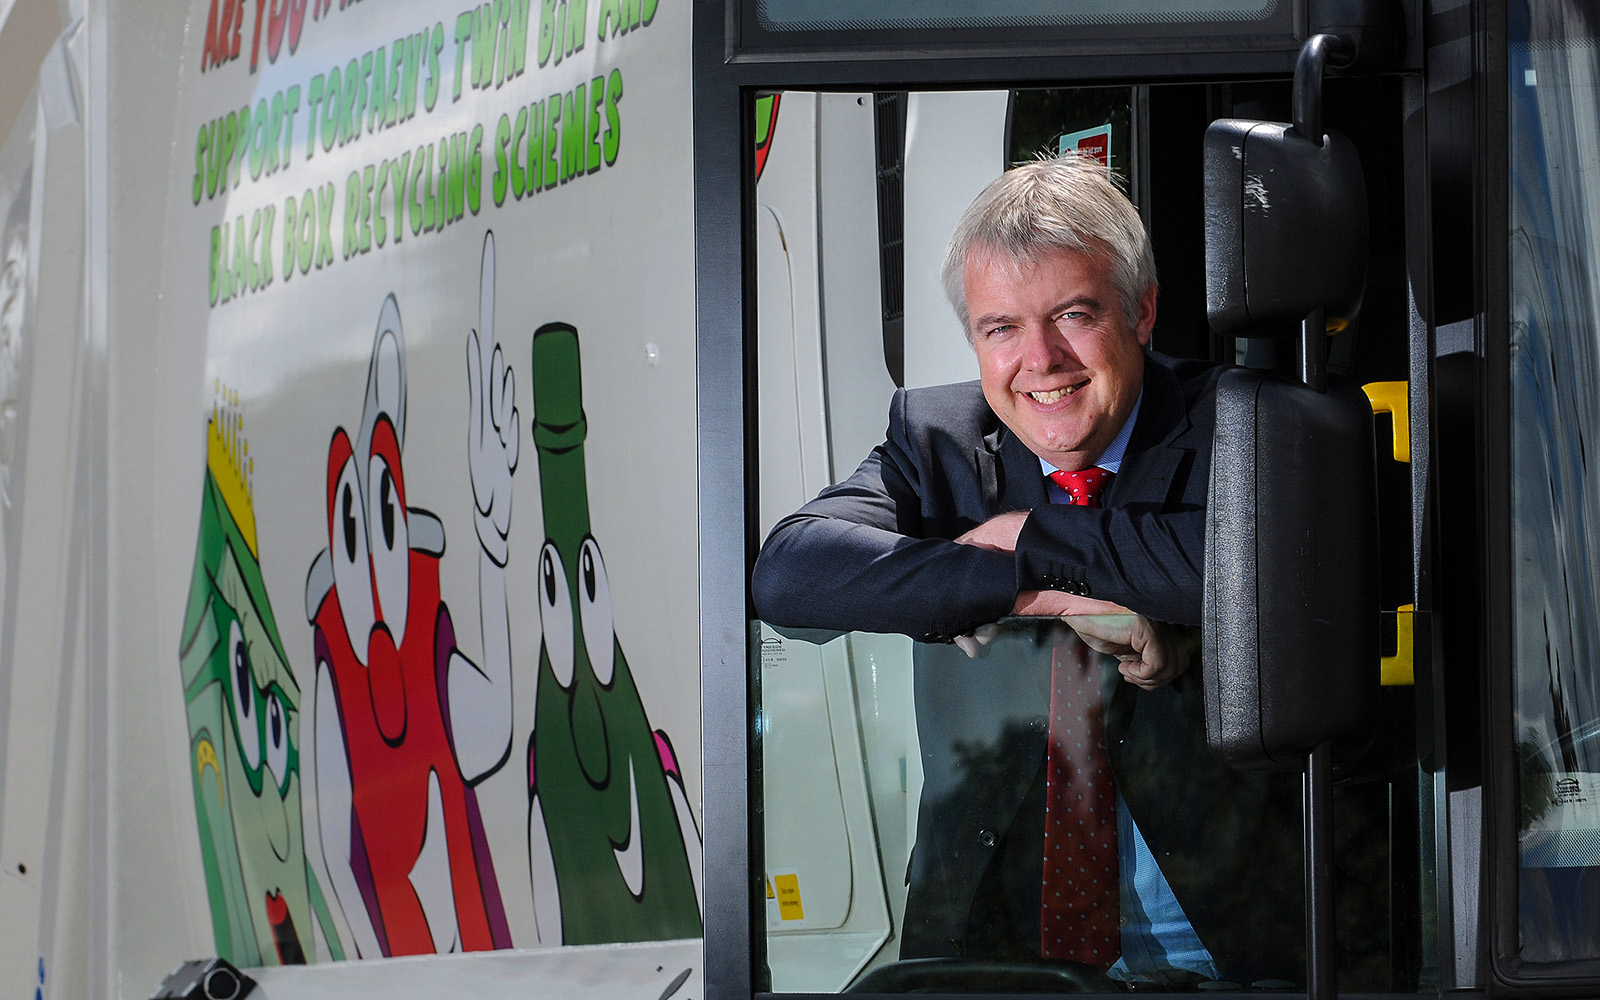 Wales First Minister Carwyn Jones travels by dustbin lorry as part of his tour of public services in Wales for Torfaen County Council